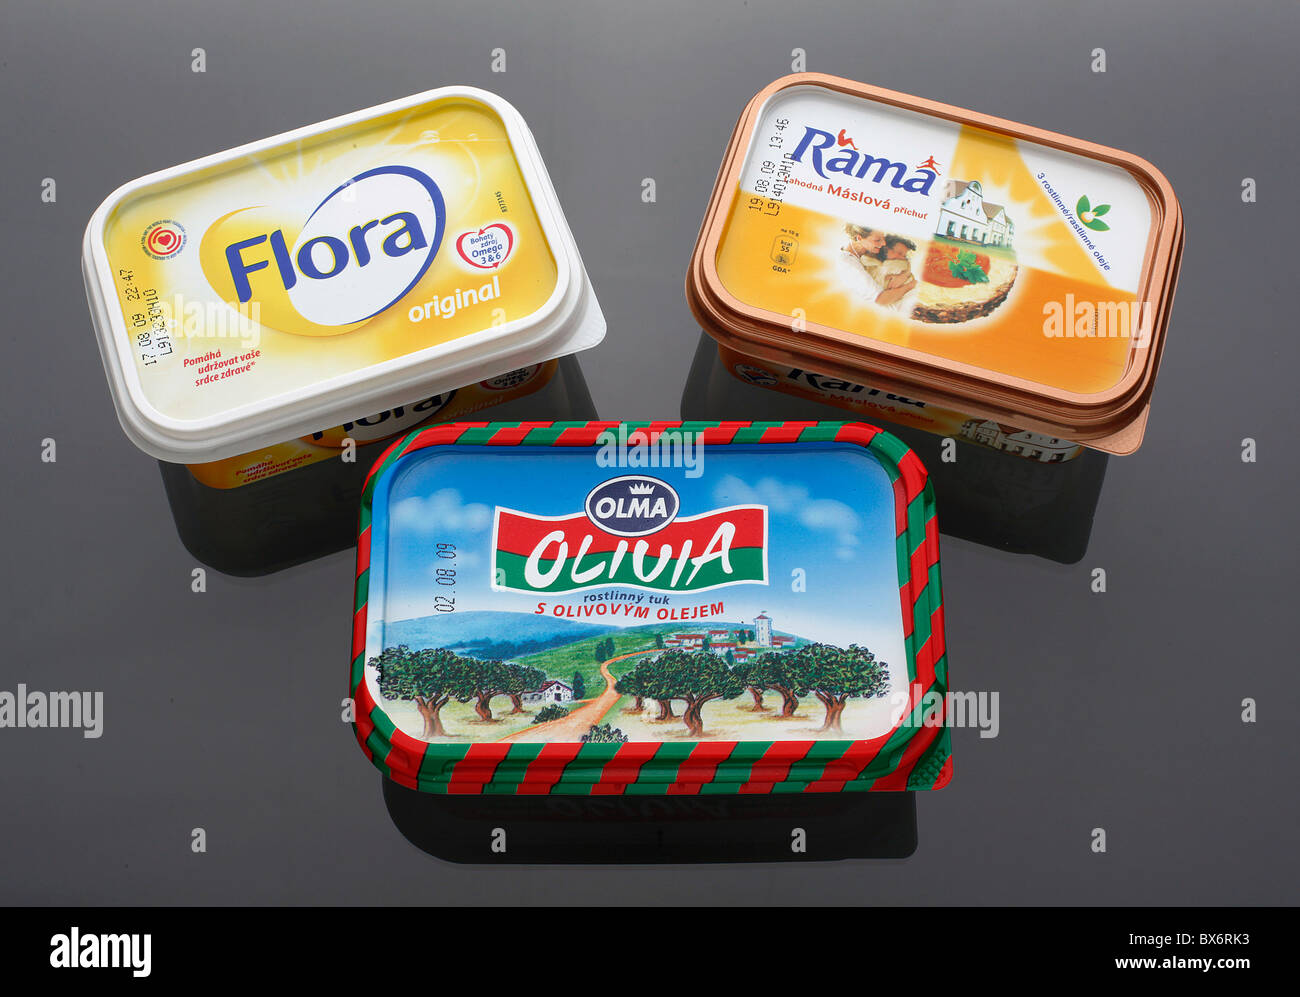 Rama, Flora and Olivia, fresquent margarines, butter substitutes, made by Czech dairies. (CTK Photo/Martin Sterba) - Stock Image